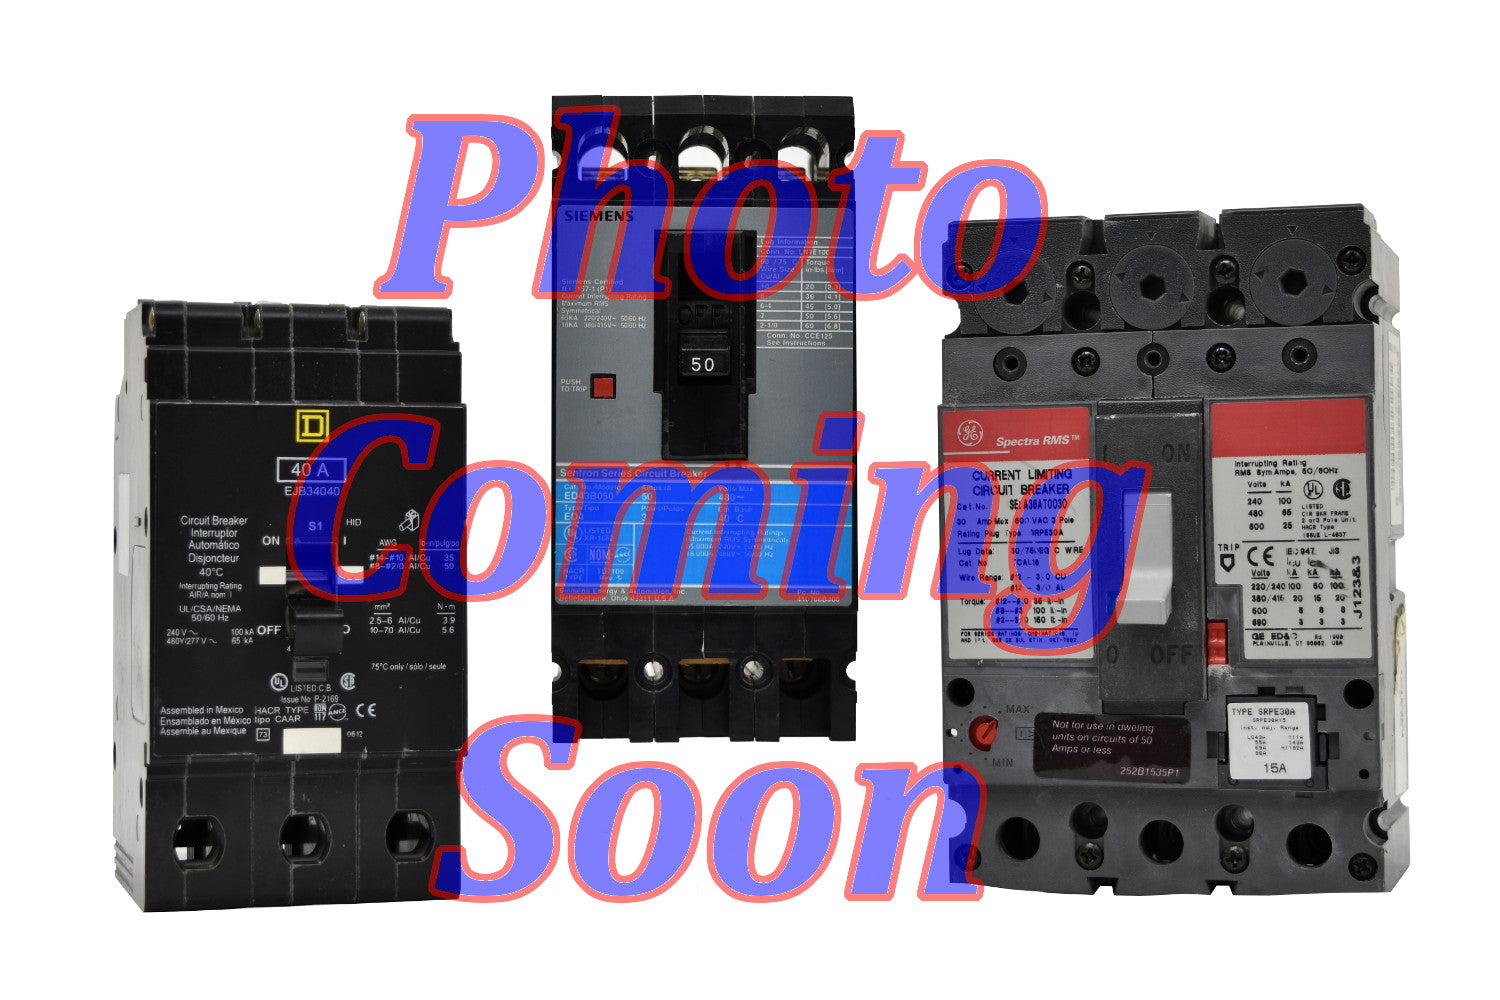 General Electric FCN326TE025R2 Circuit Breakers